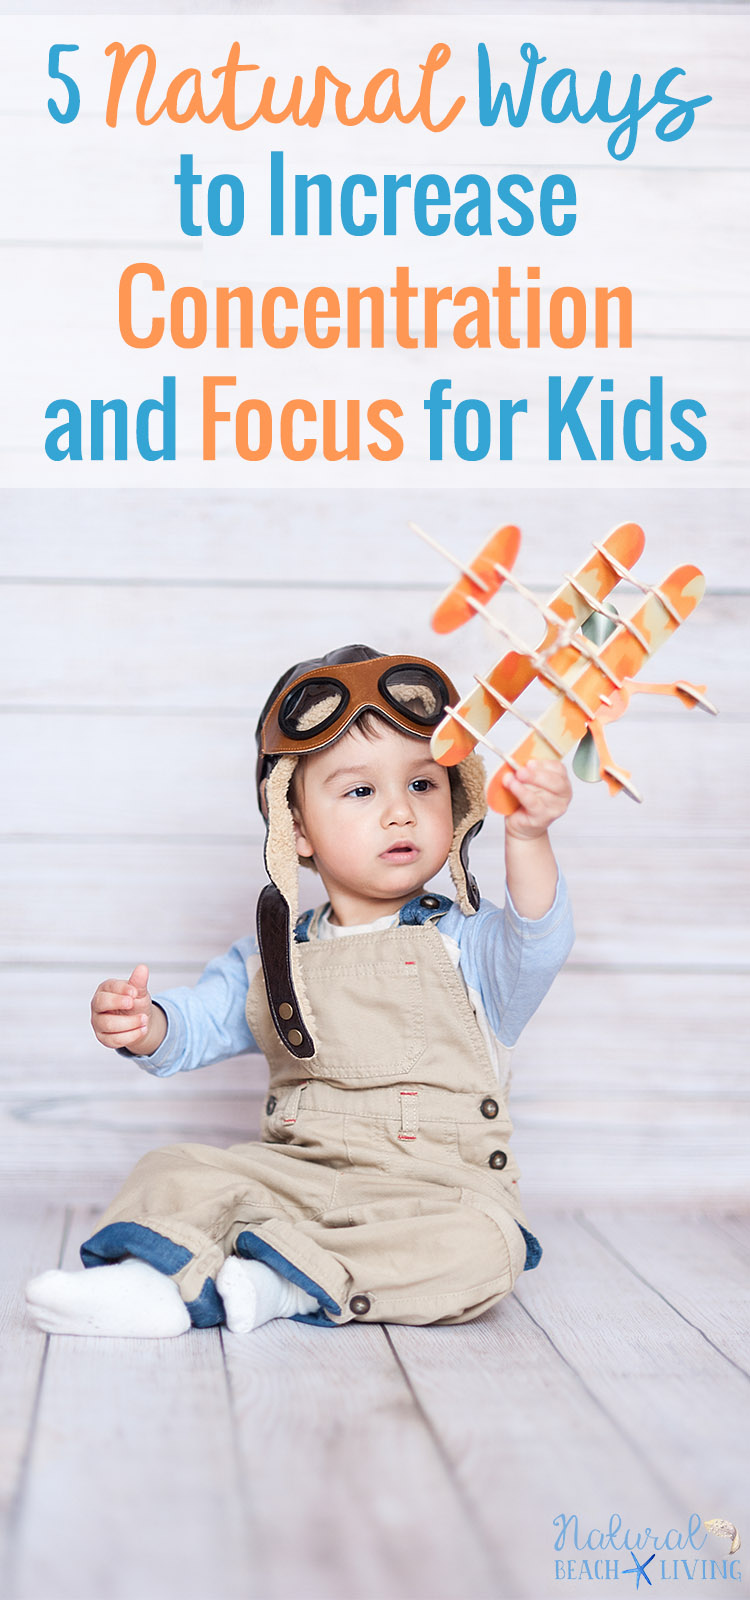 6+ Natural Ways to Increase Concentration and Focus for Kids